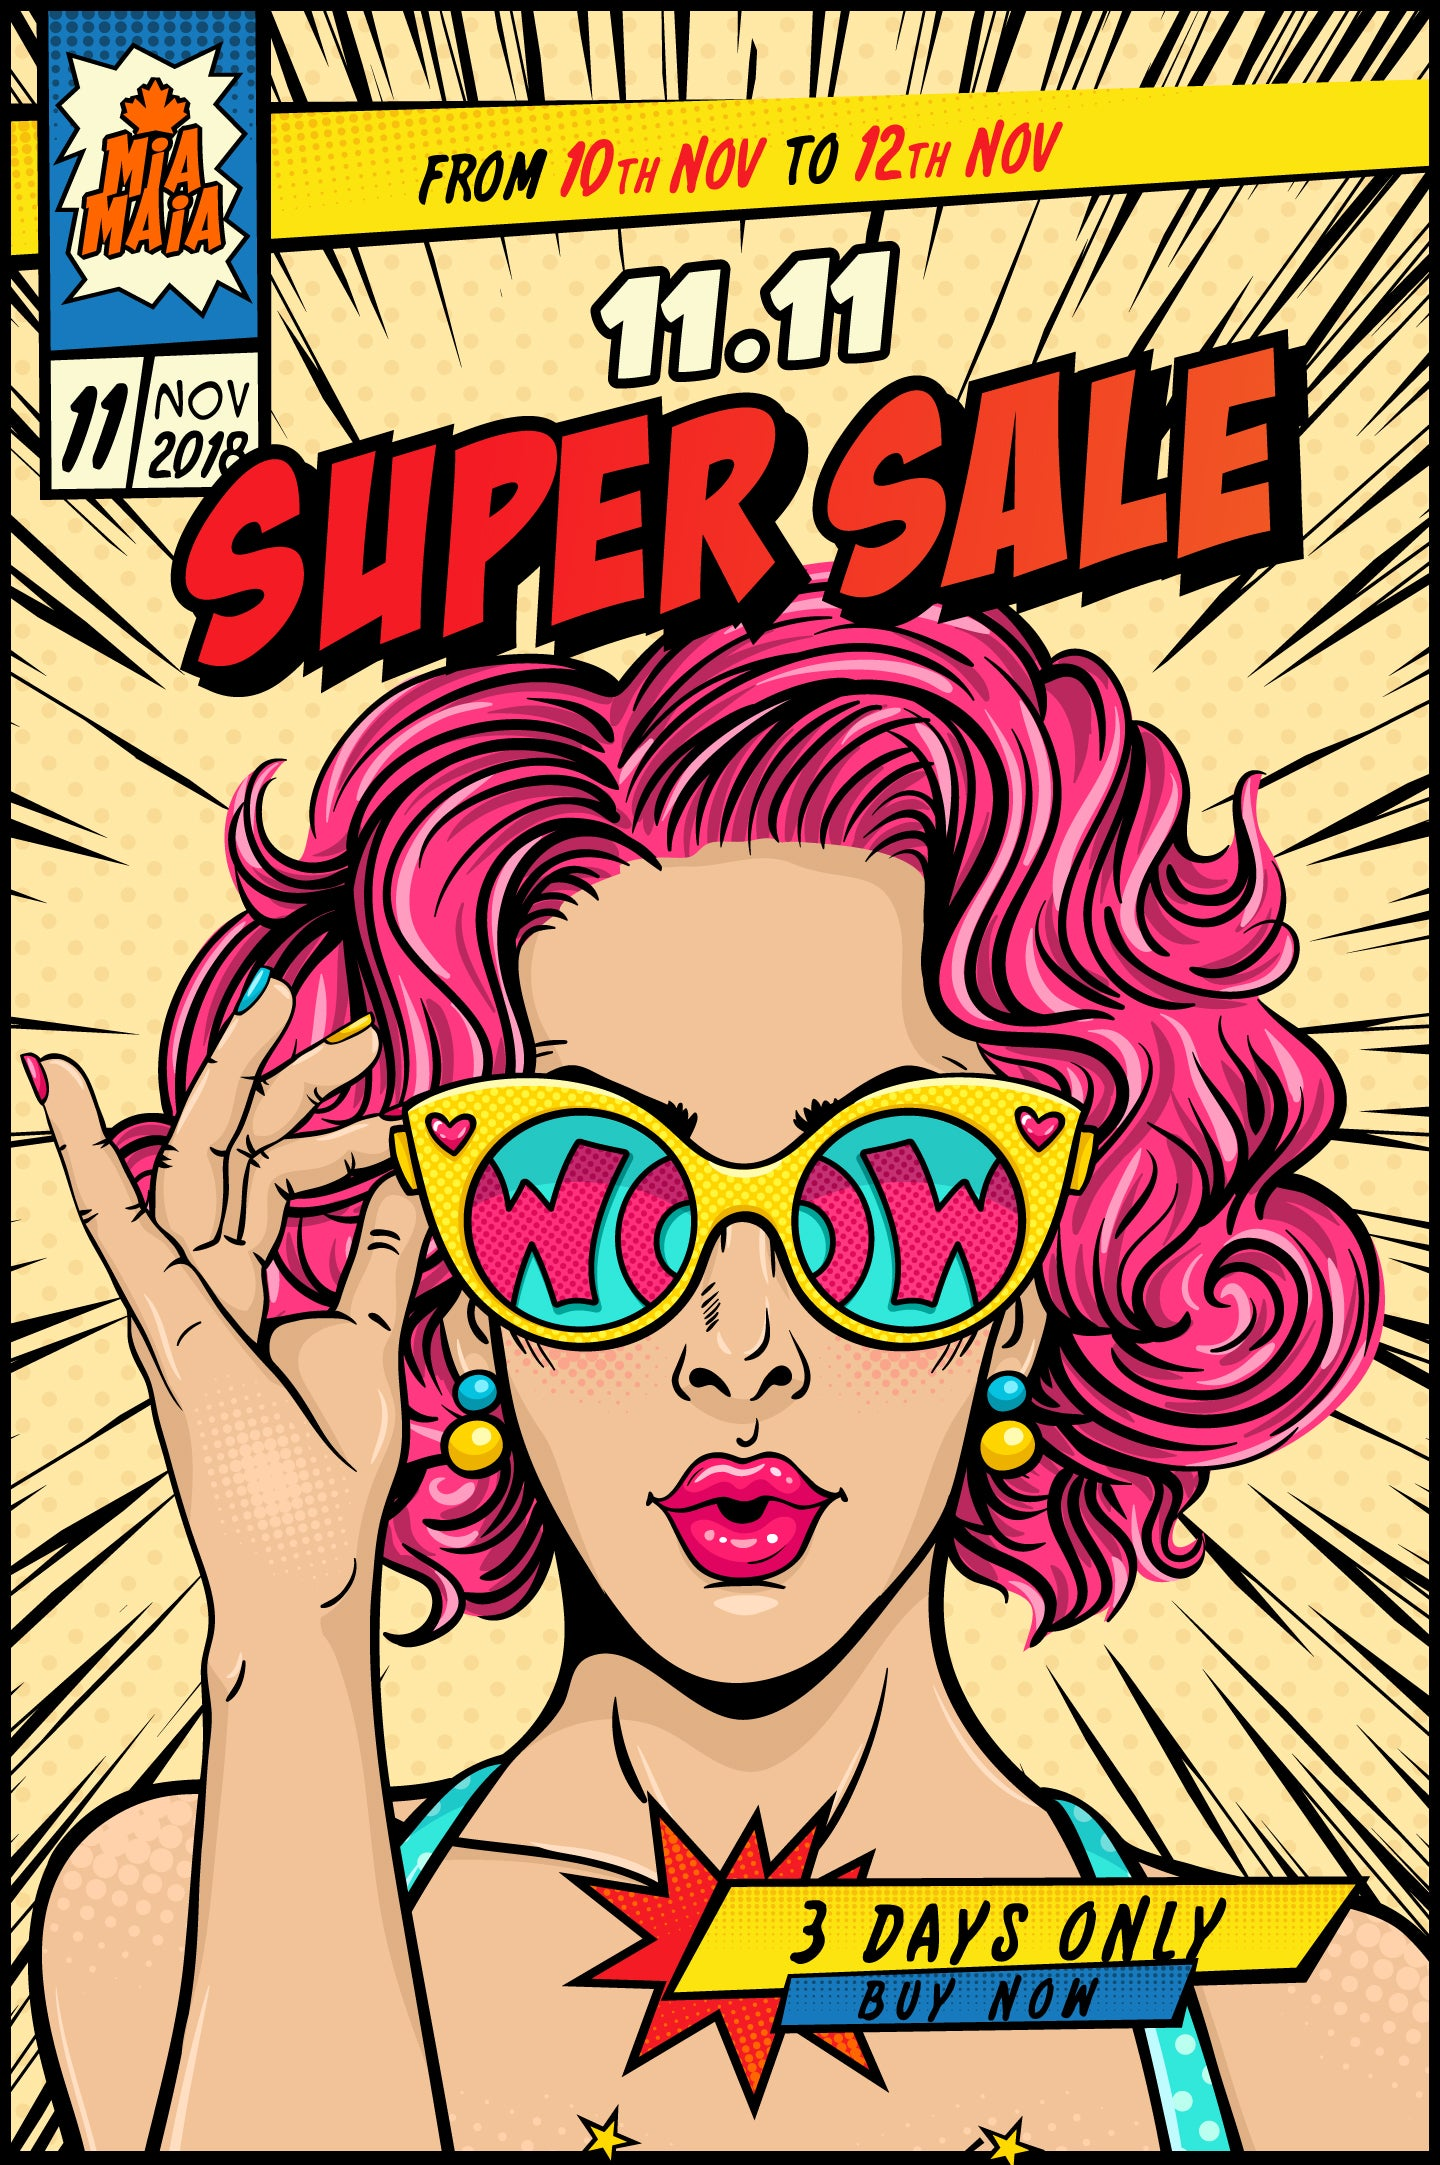 Double 11 Super Sale 2018 | Mia-Maia.com